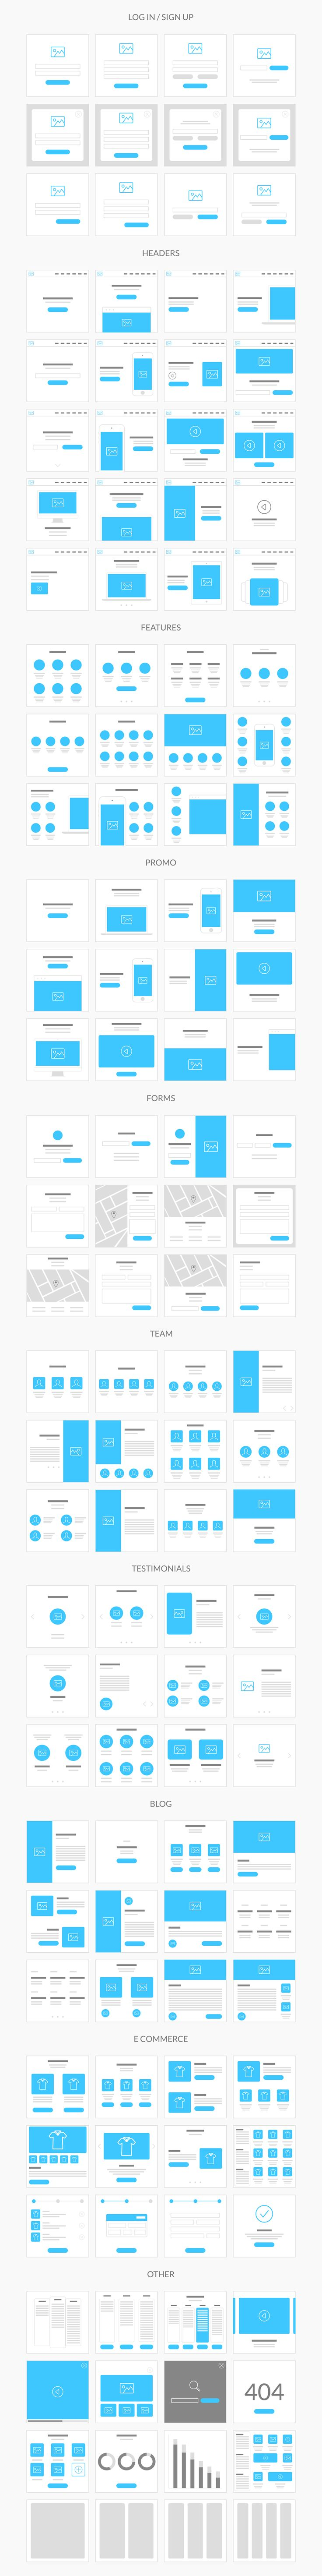 90 best web design images on Pinterest | Charts, Graph design and ...